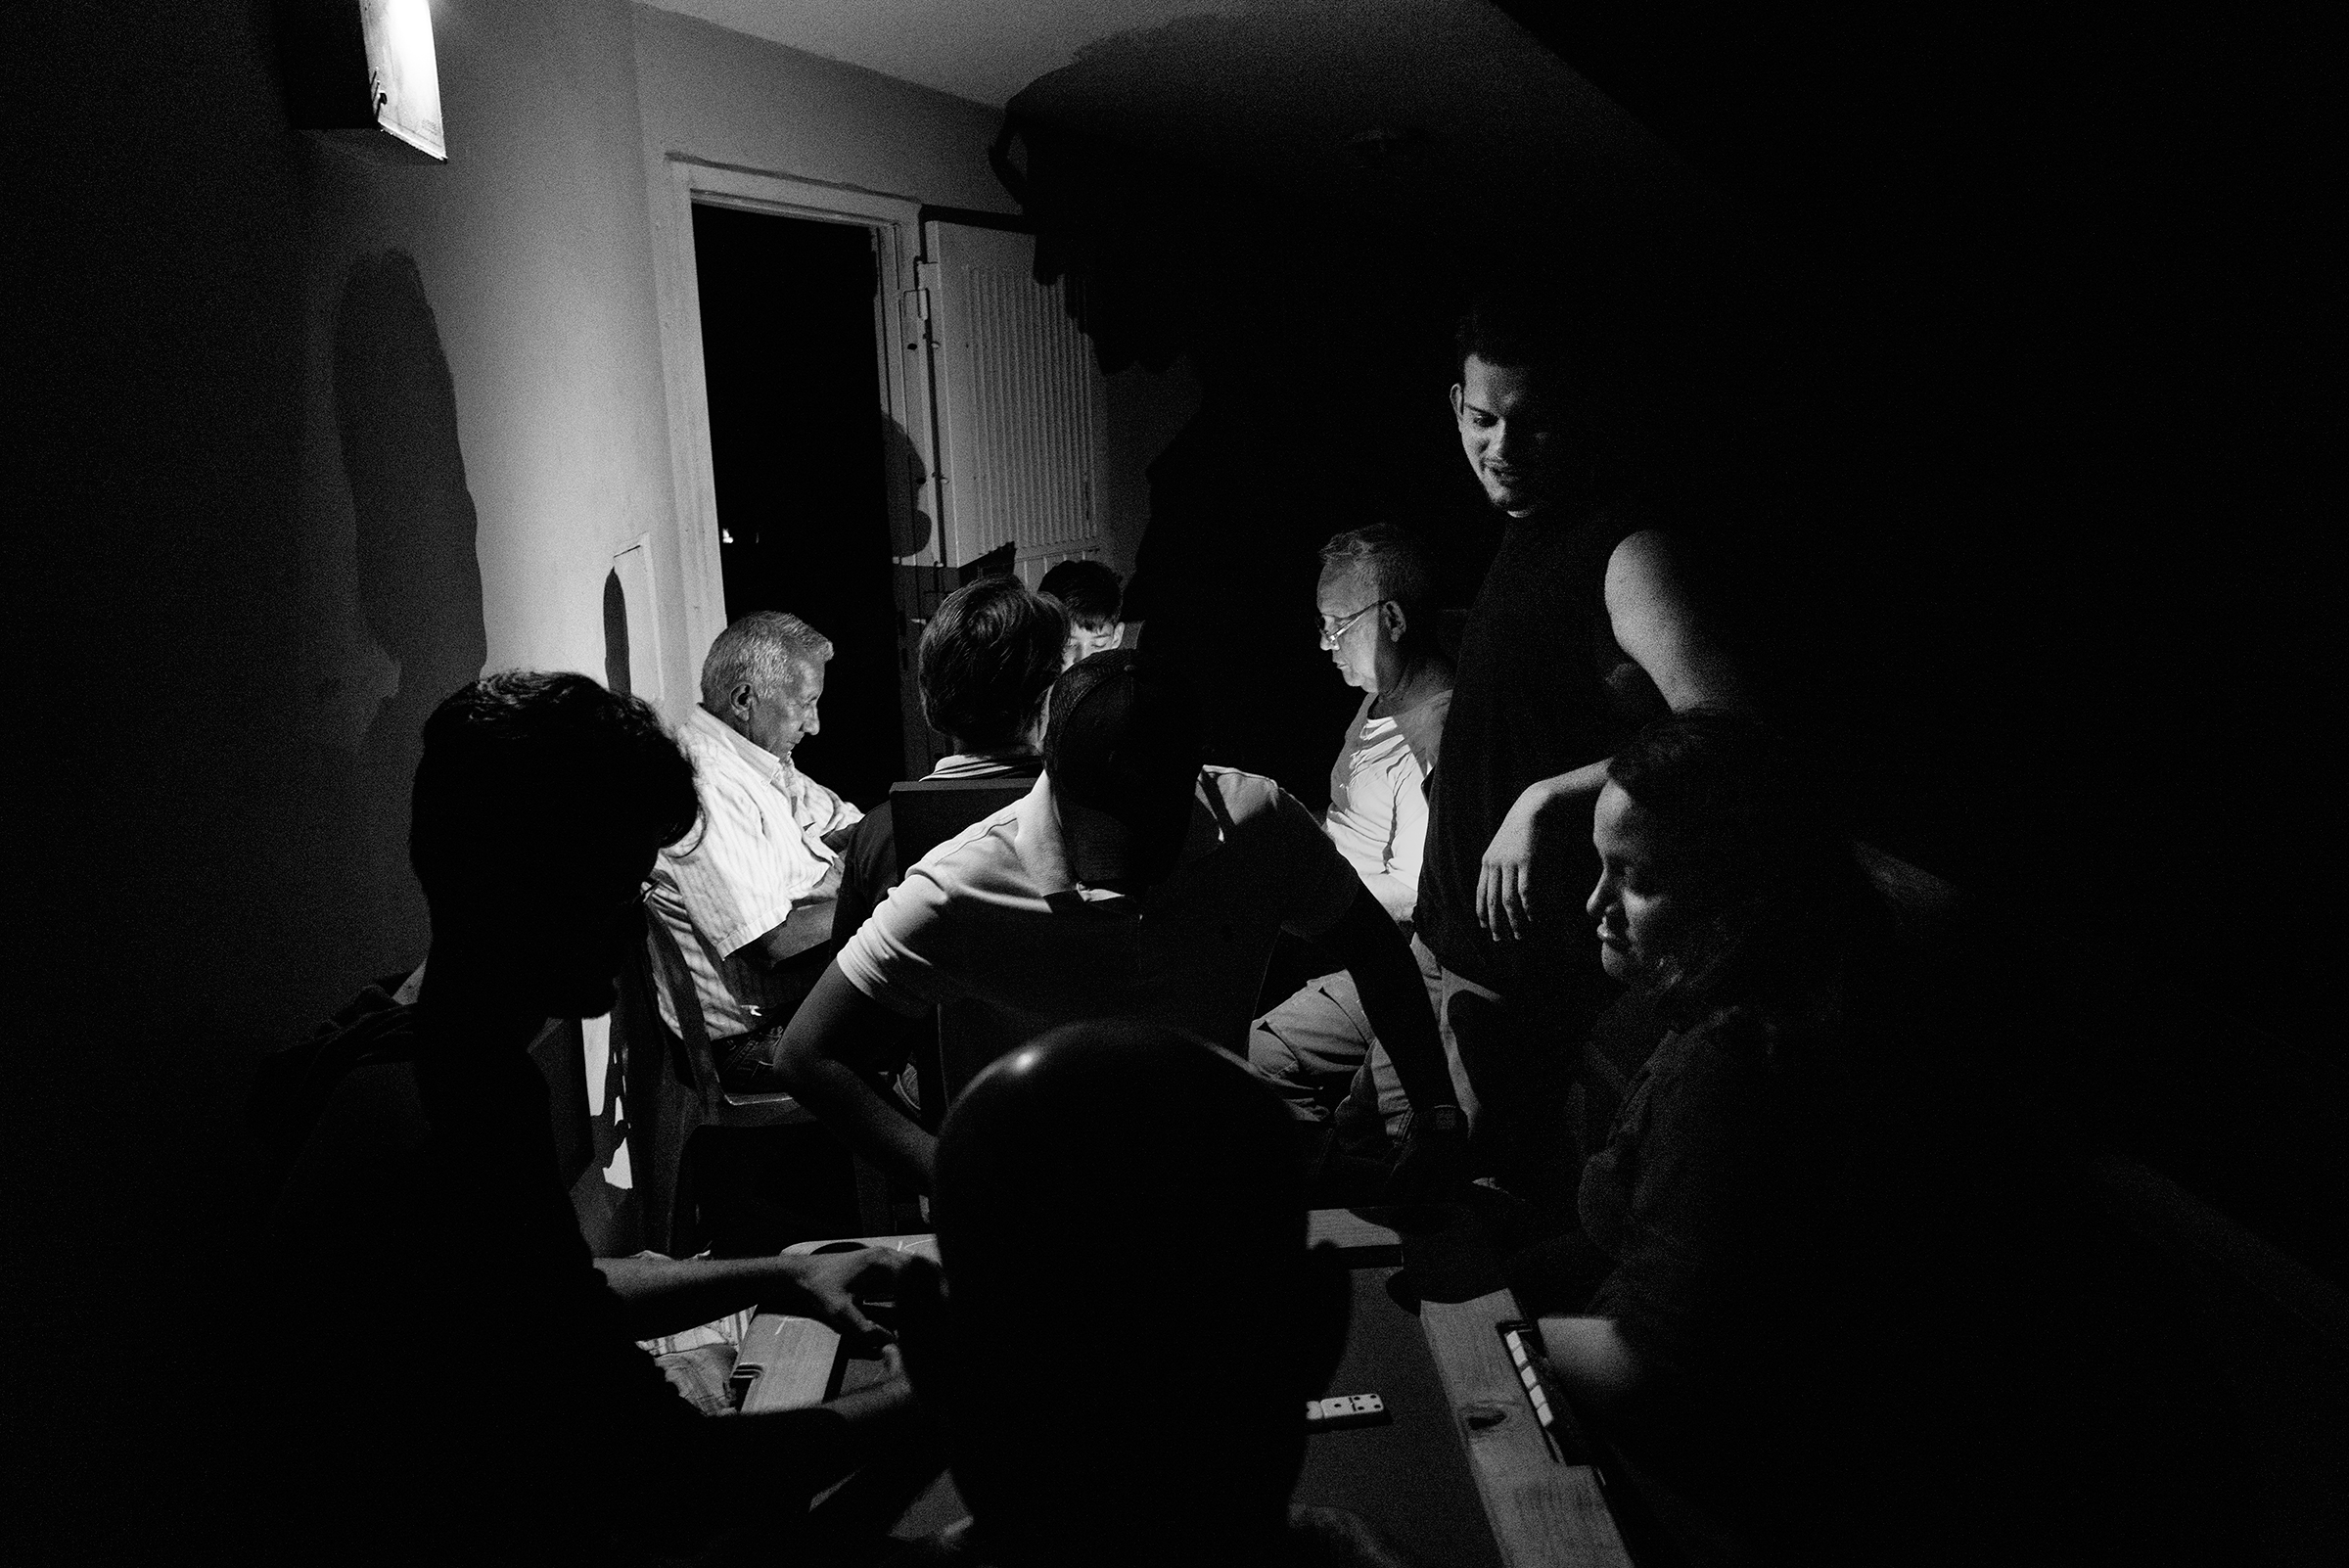 Residents of the Saladillo block of apartments in Maracaibo, after a power cut, on April 12. Venezuela's unprecedented energy crisis left its second largest city without power for long periods in March and April.